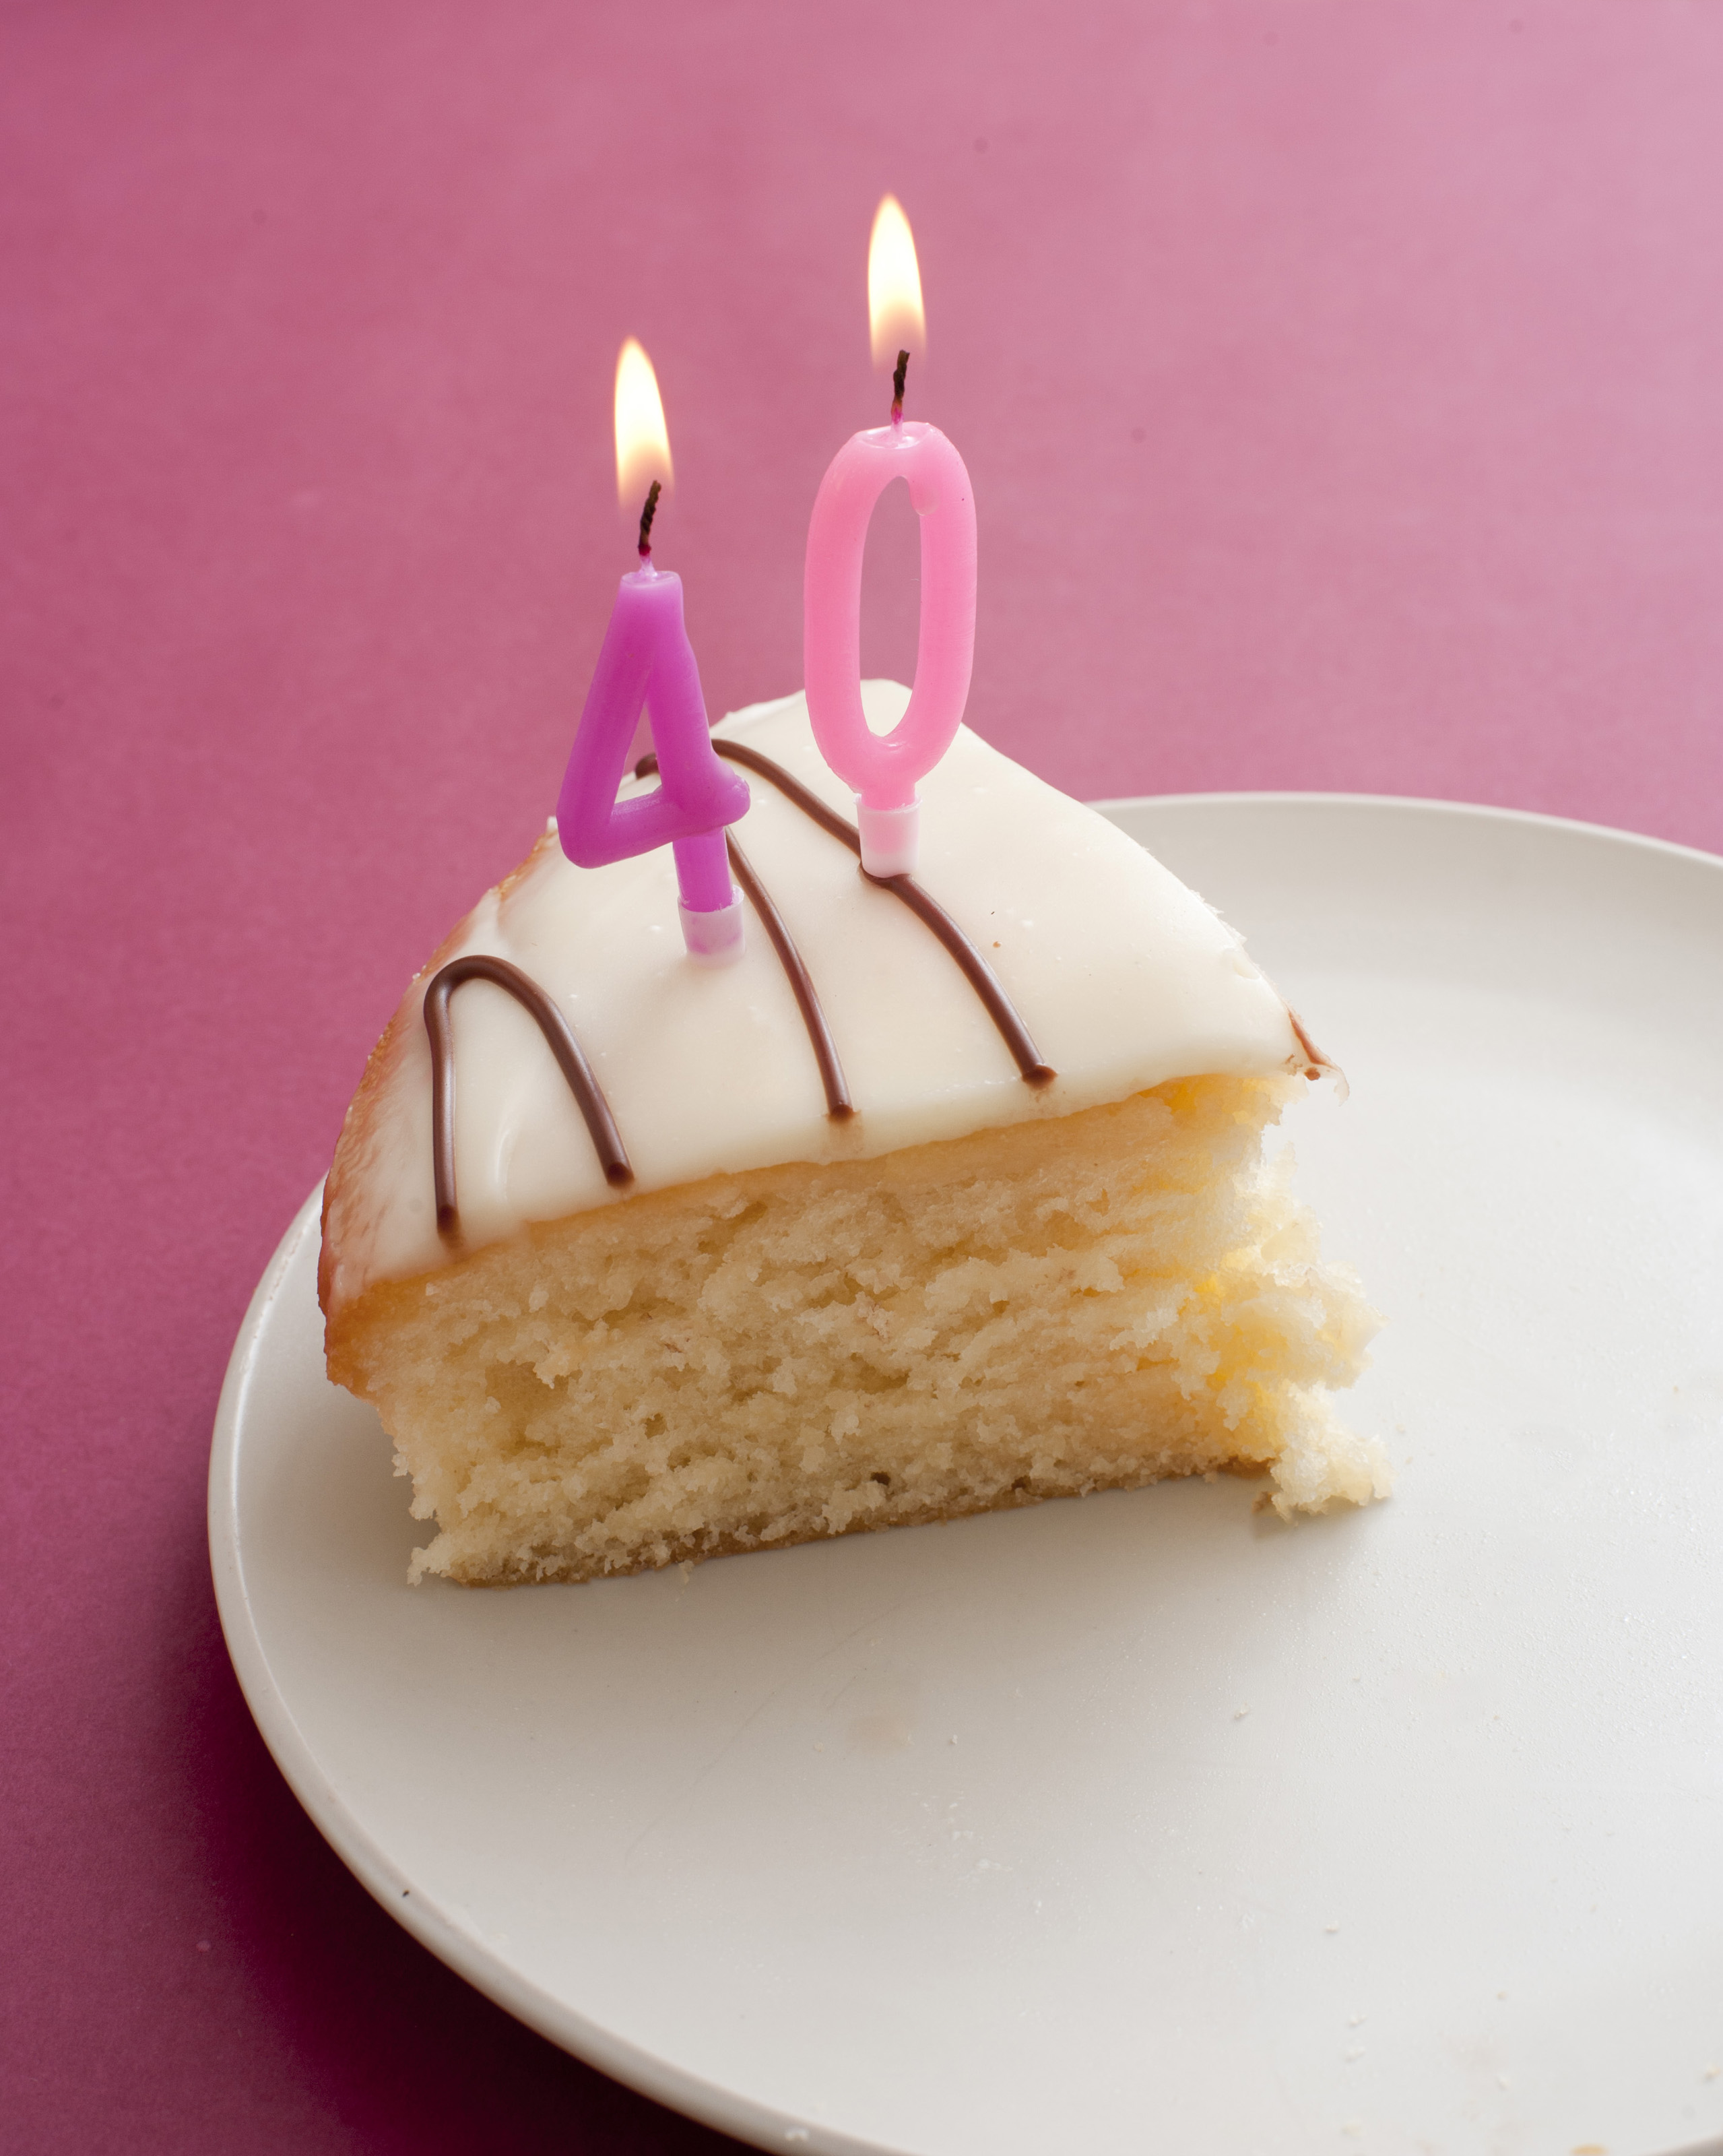 Free Image Of 40th Birthday Candles In Slice Cake On Plate